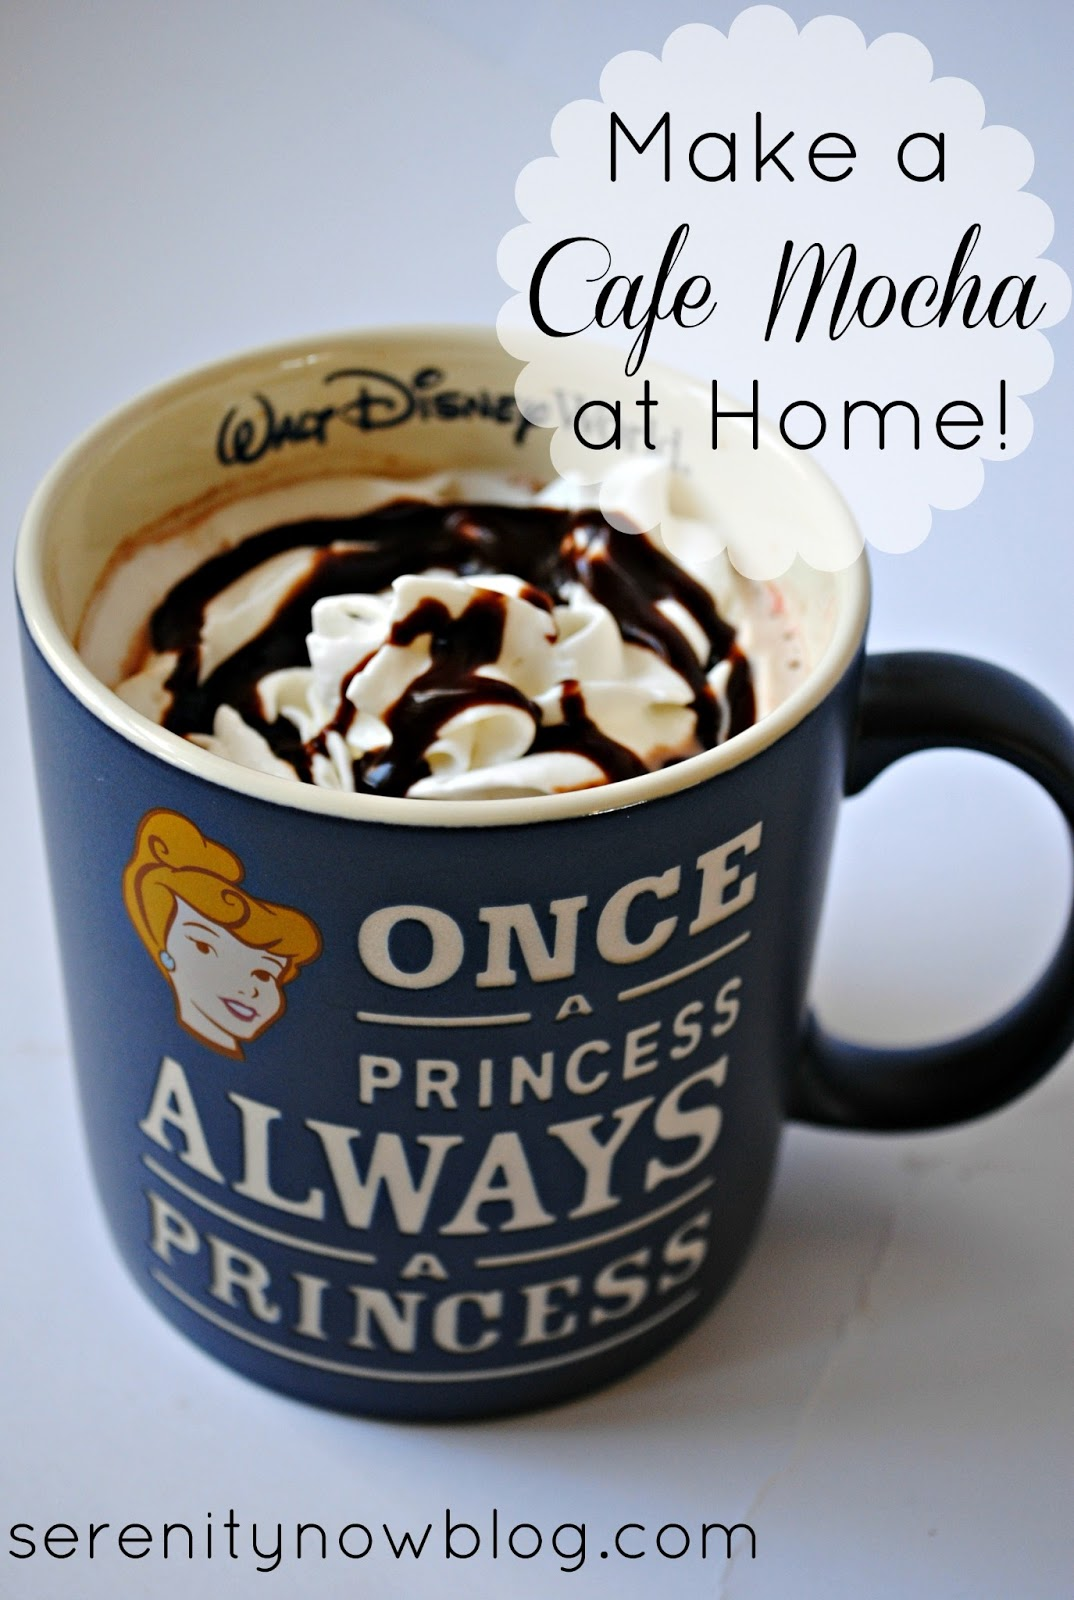 How To Make A Cafe Mocha At Home Pantry Ingredients From Serenity Now